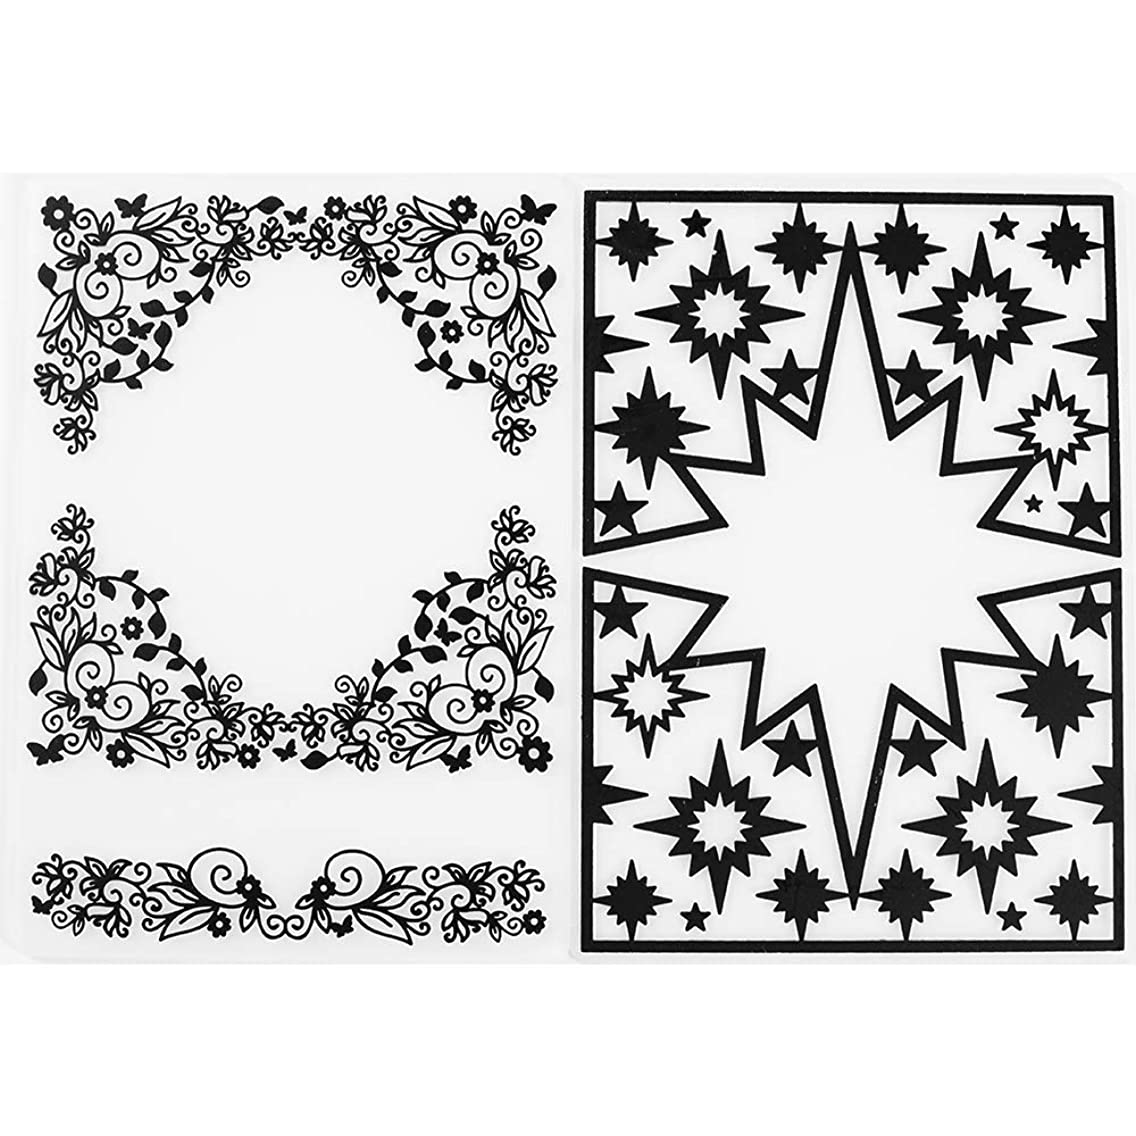 MaGuo Coner and Border Decorative Plastic Embossing Folder Template Leaves Flower and Stars for Card Making Scrapbooking DIY Crafts